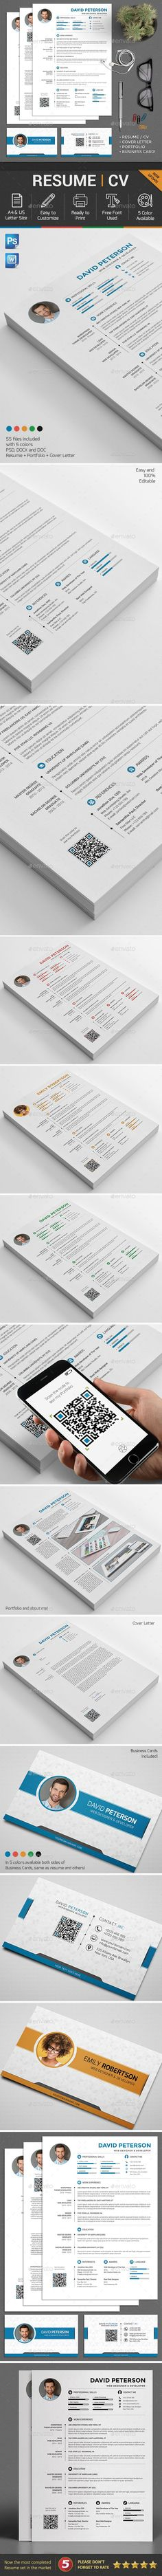 #Resume #CV Set - Resumes Stationery Download here: https://graphicriver.net/item/resume-cv/19211082?ref=alena994